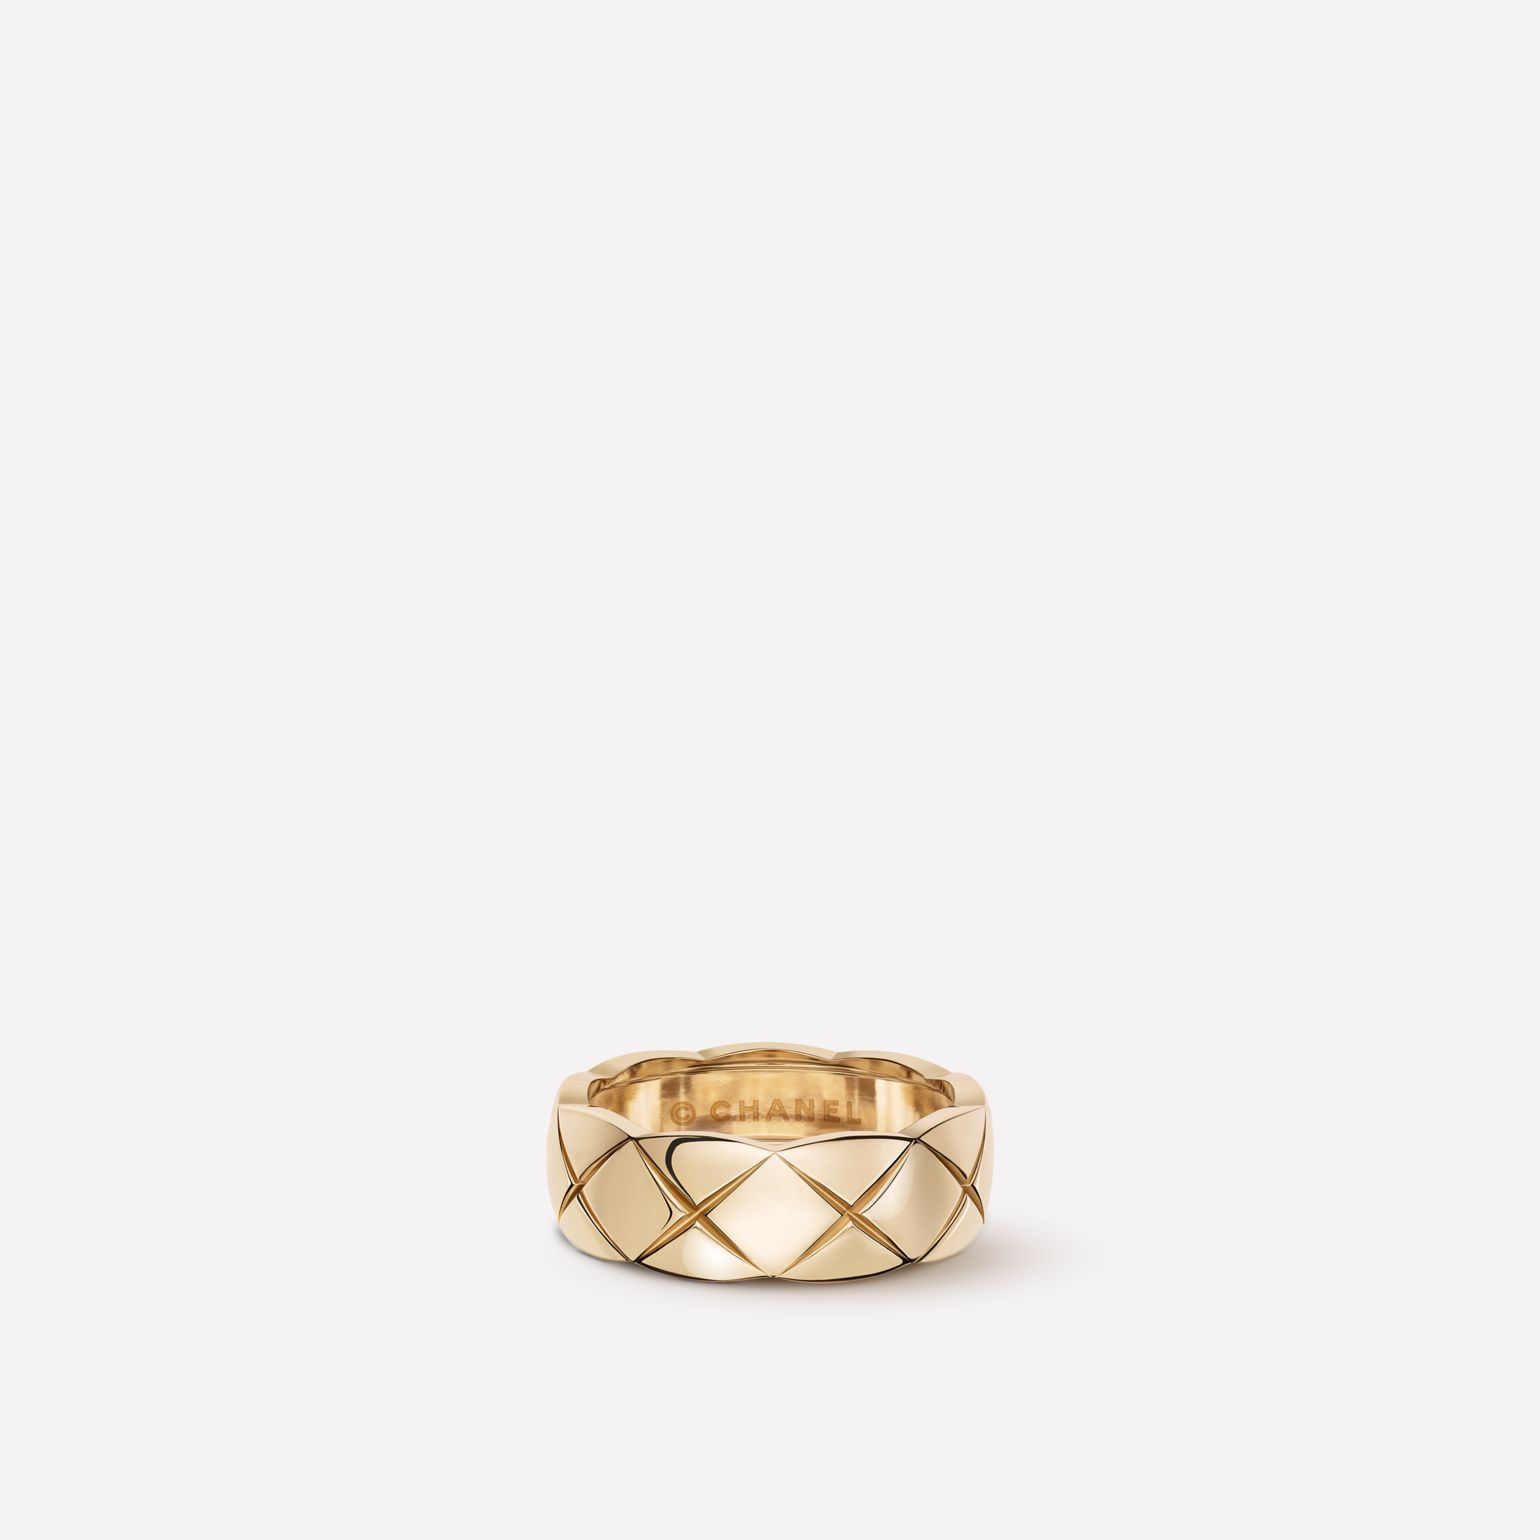 Coco Crush Ring Quilted motif ring in 18K BEIGE GOLD. Small version.